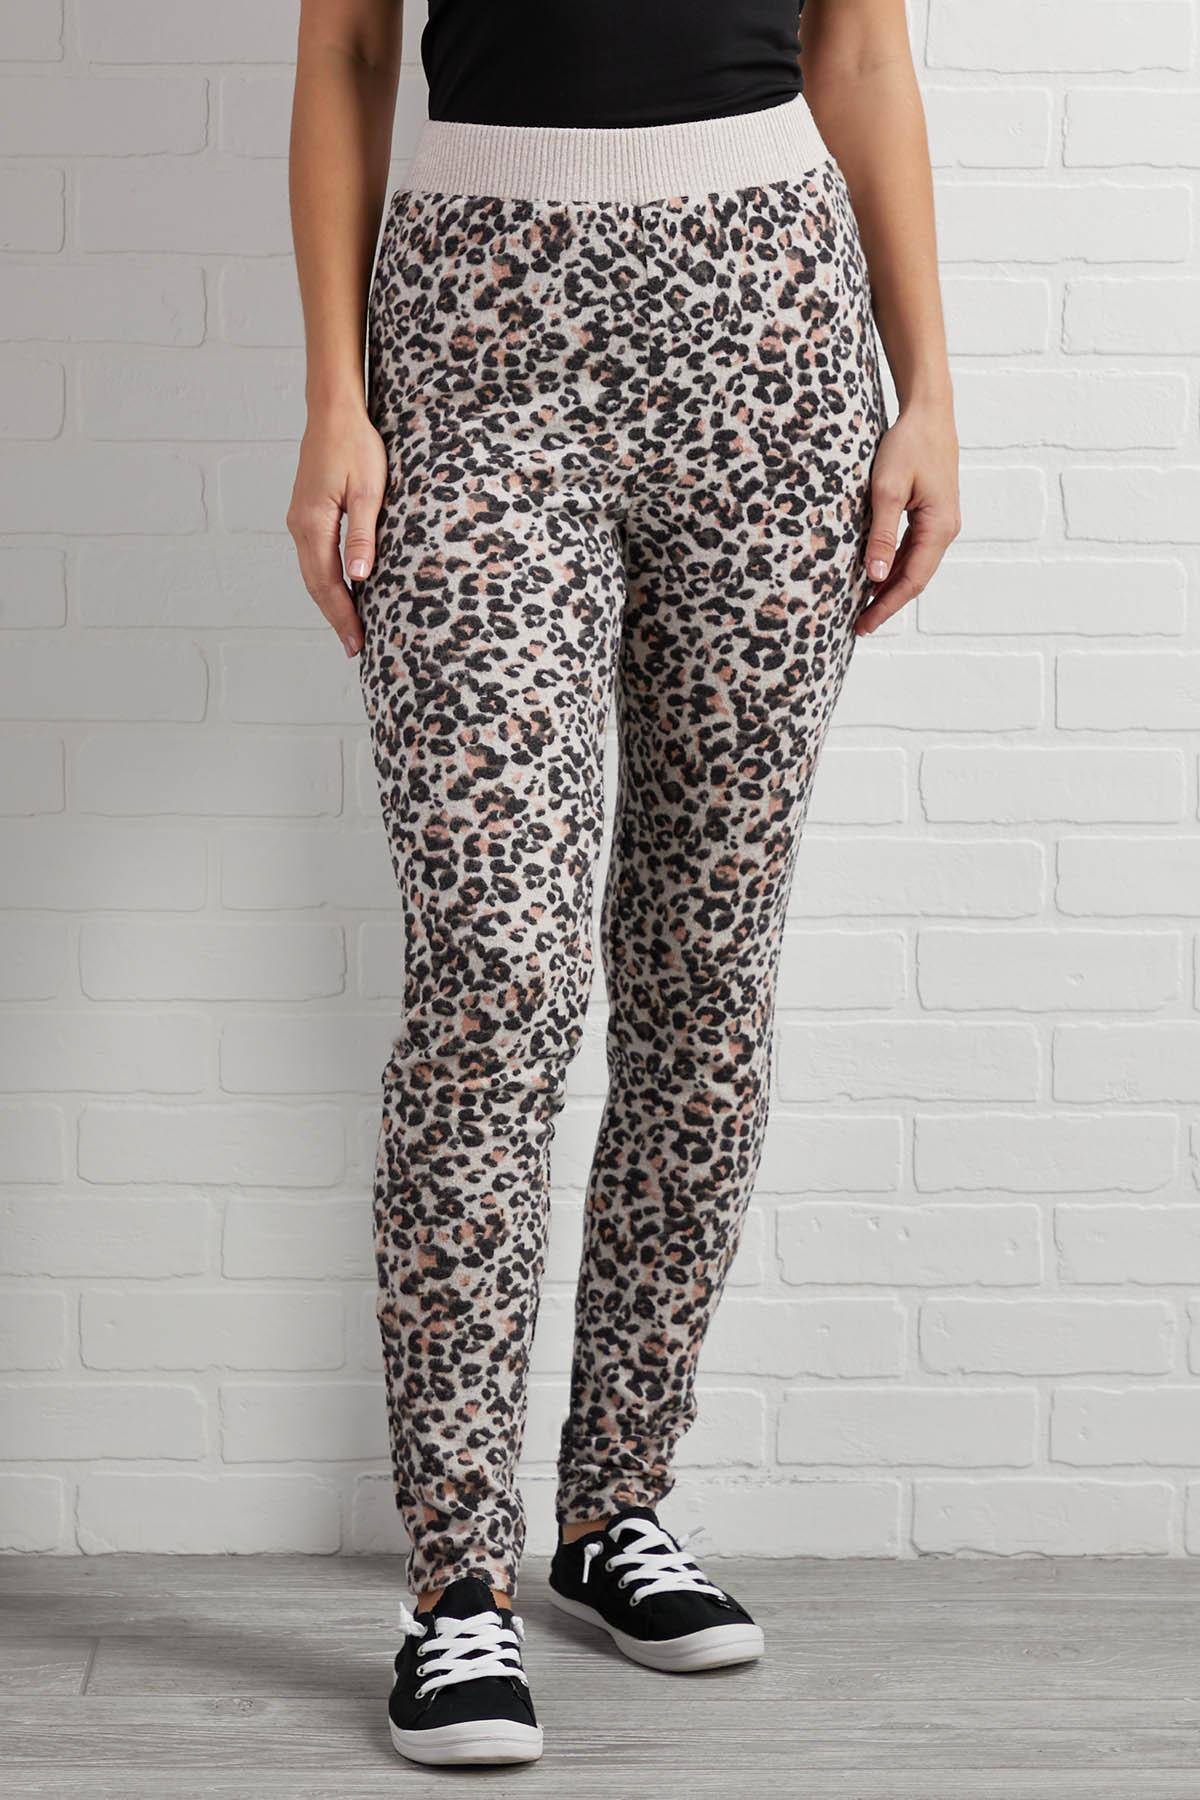 Paws And Relax Pants